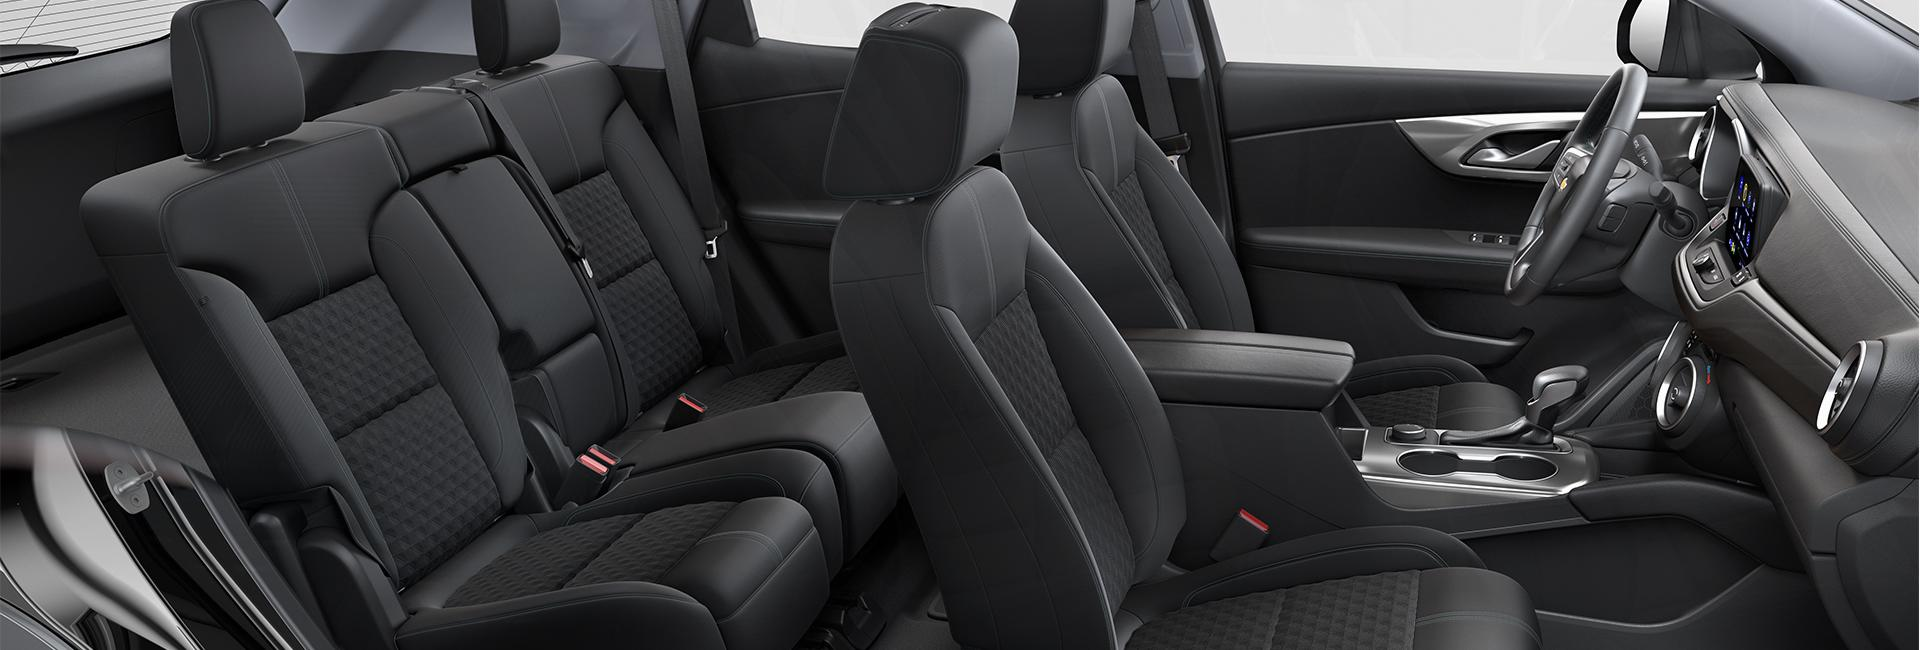 Picture of the interior of the 2020 Chevy Blazer.